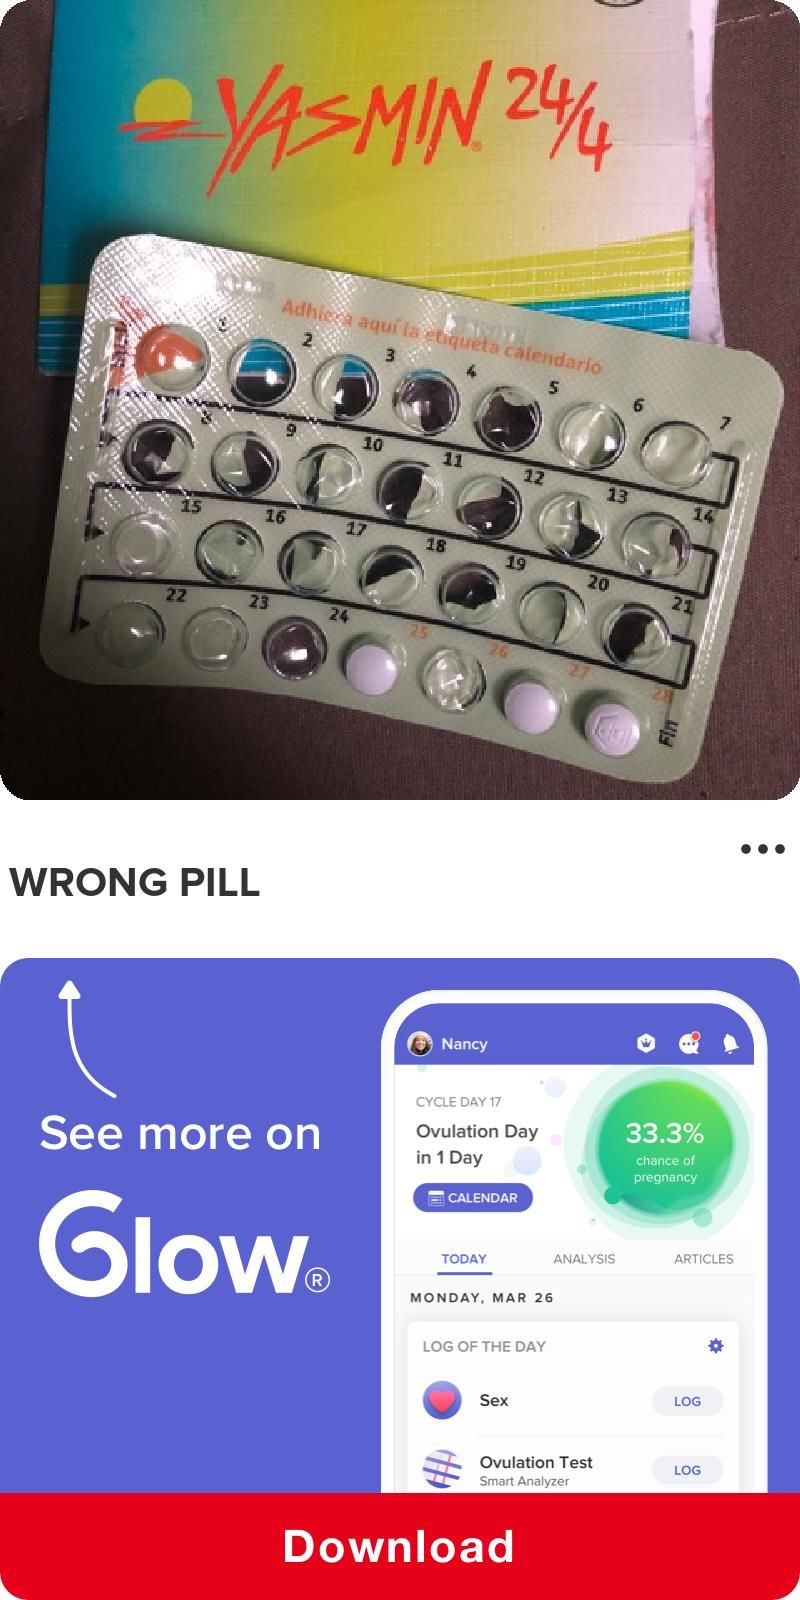 Wrong pill - See the rest of this post by downloading Glow - The Top Rated Fertility & Ovulation Tracker! #on #period #cramps #relief  #late #symptoms #tracker  #days #ovulation #calculator #menstrual #cycle #periodcycle #blood #bloating #shark #week #periodtracker #sexual #health #awareness #pain #boyfriend  #mood #sharkweekfood